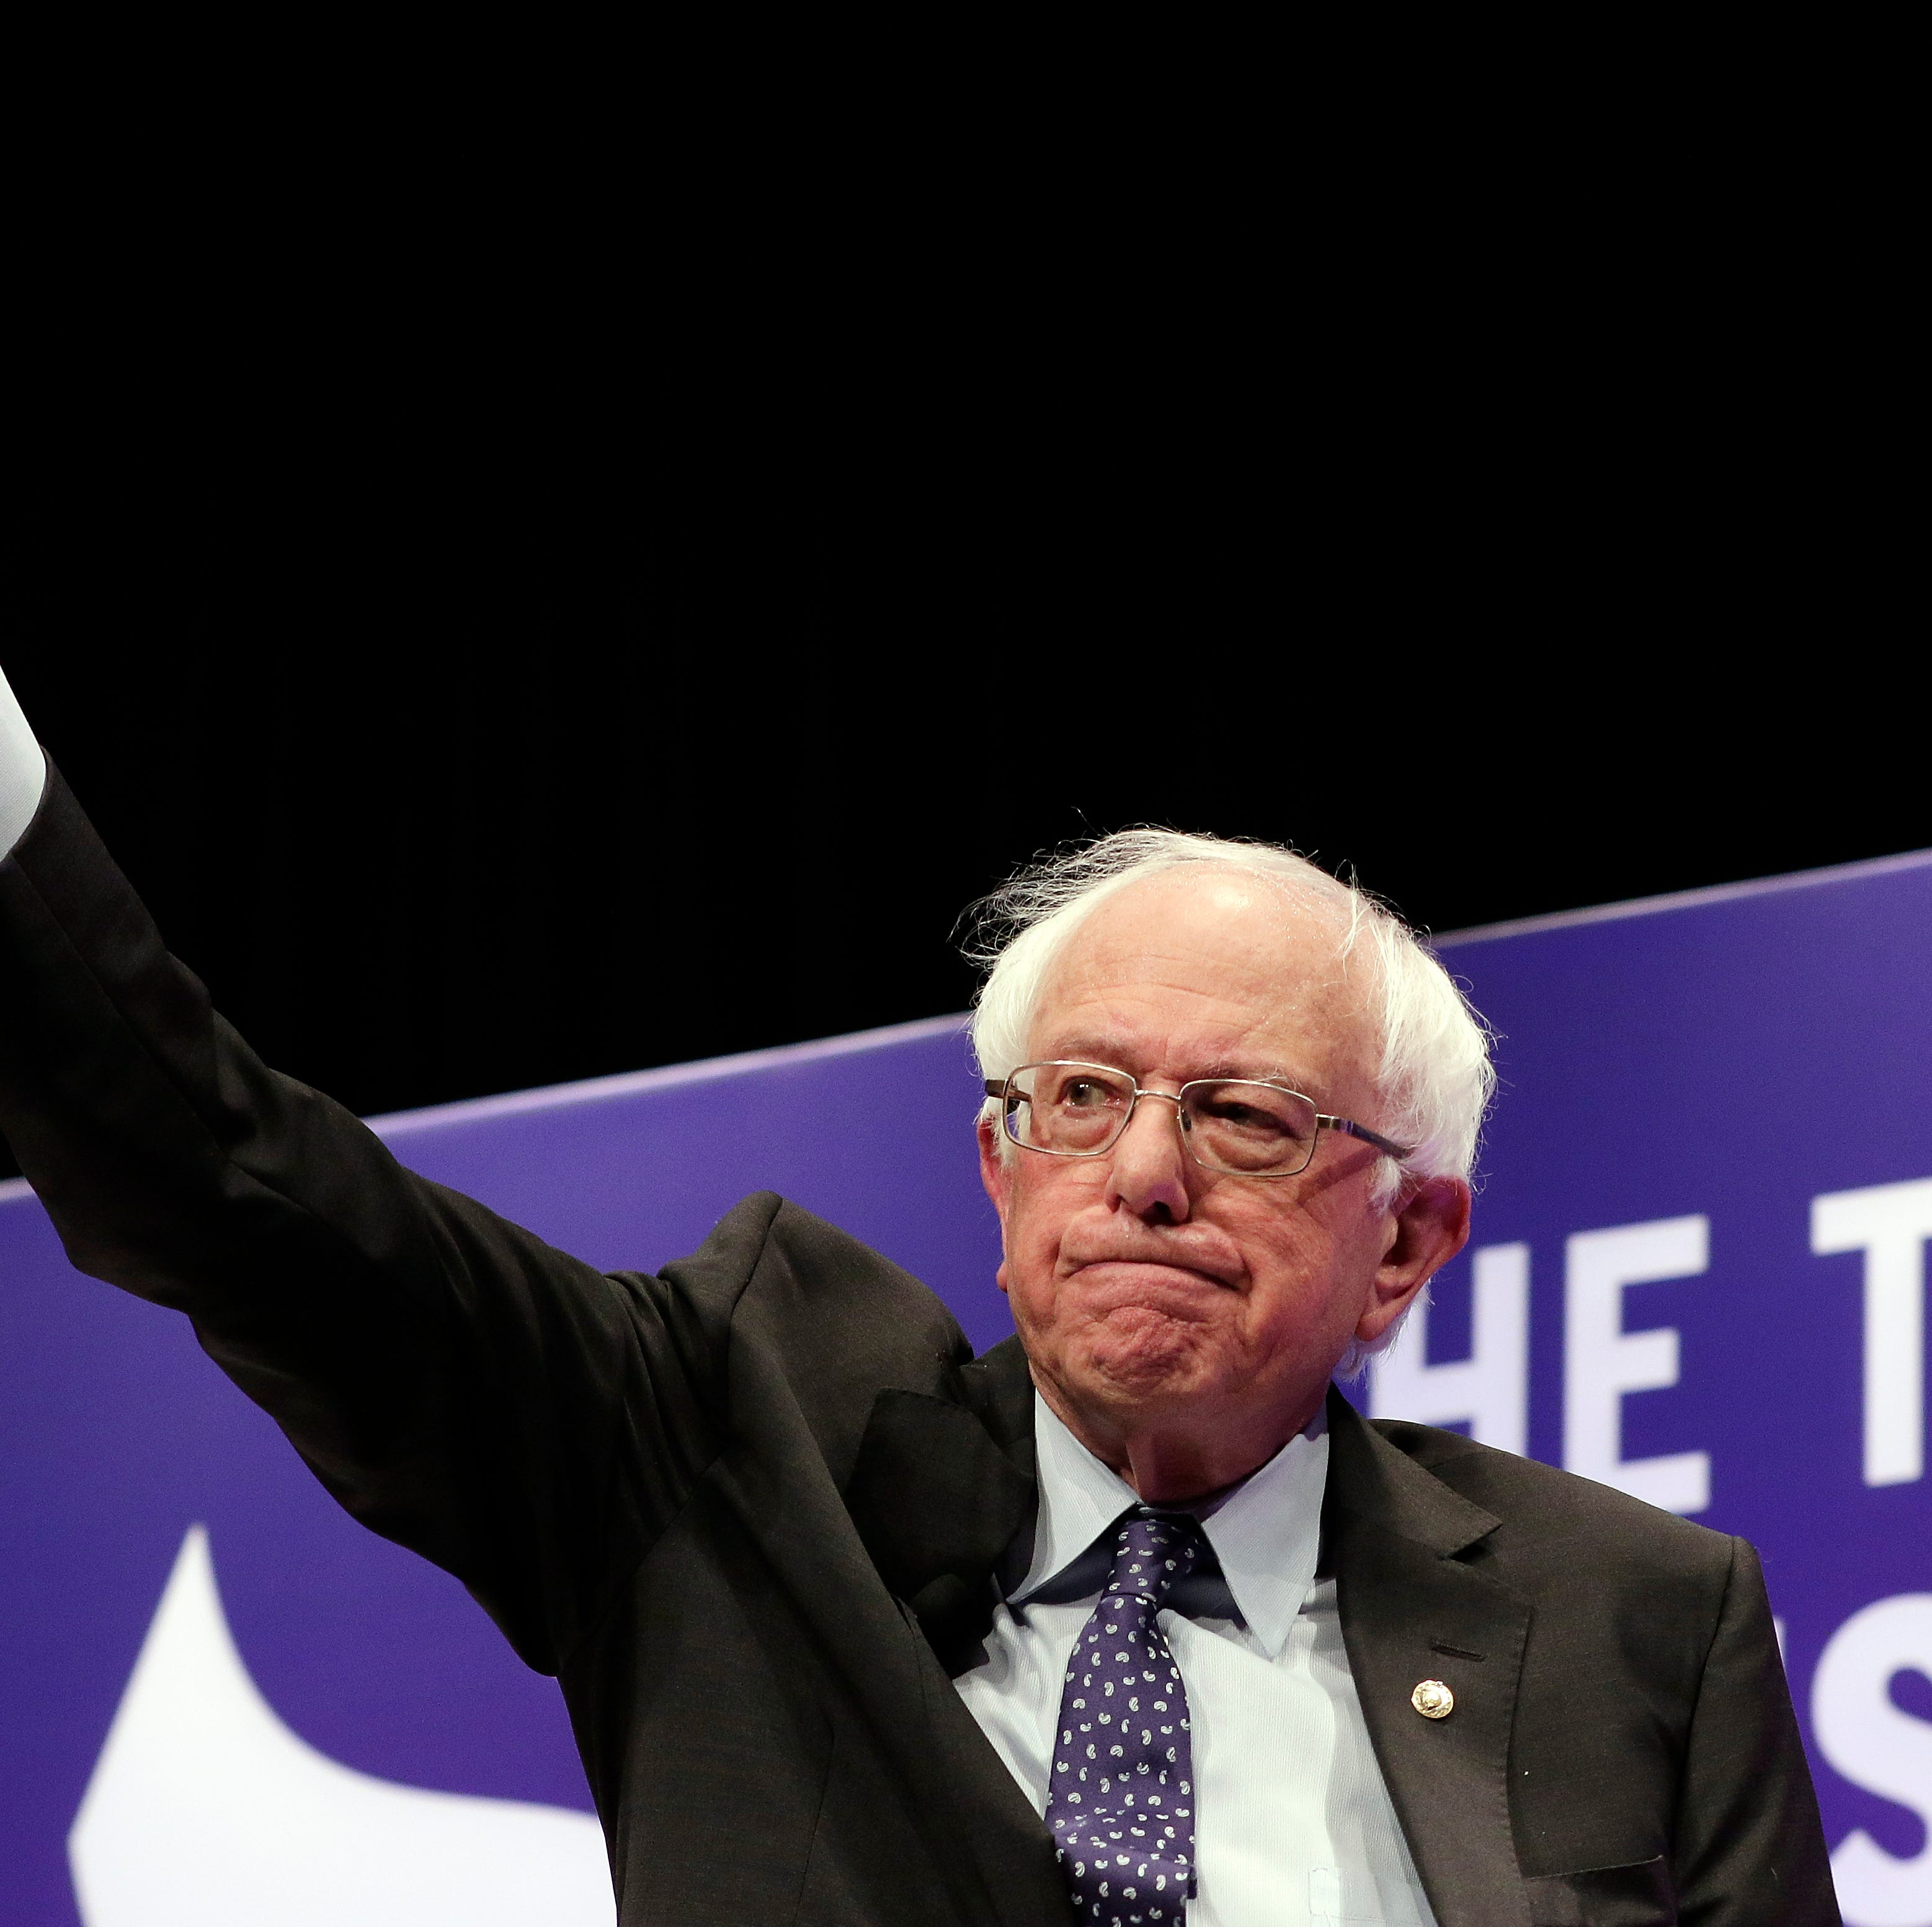 Heckled at forum, Bernie Sanders still trying to refine message to black voters